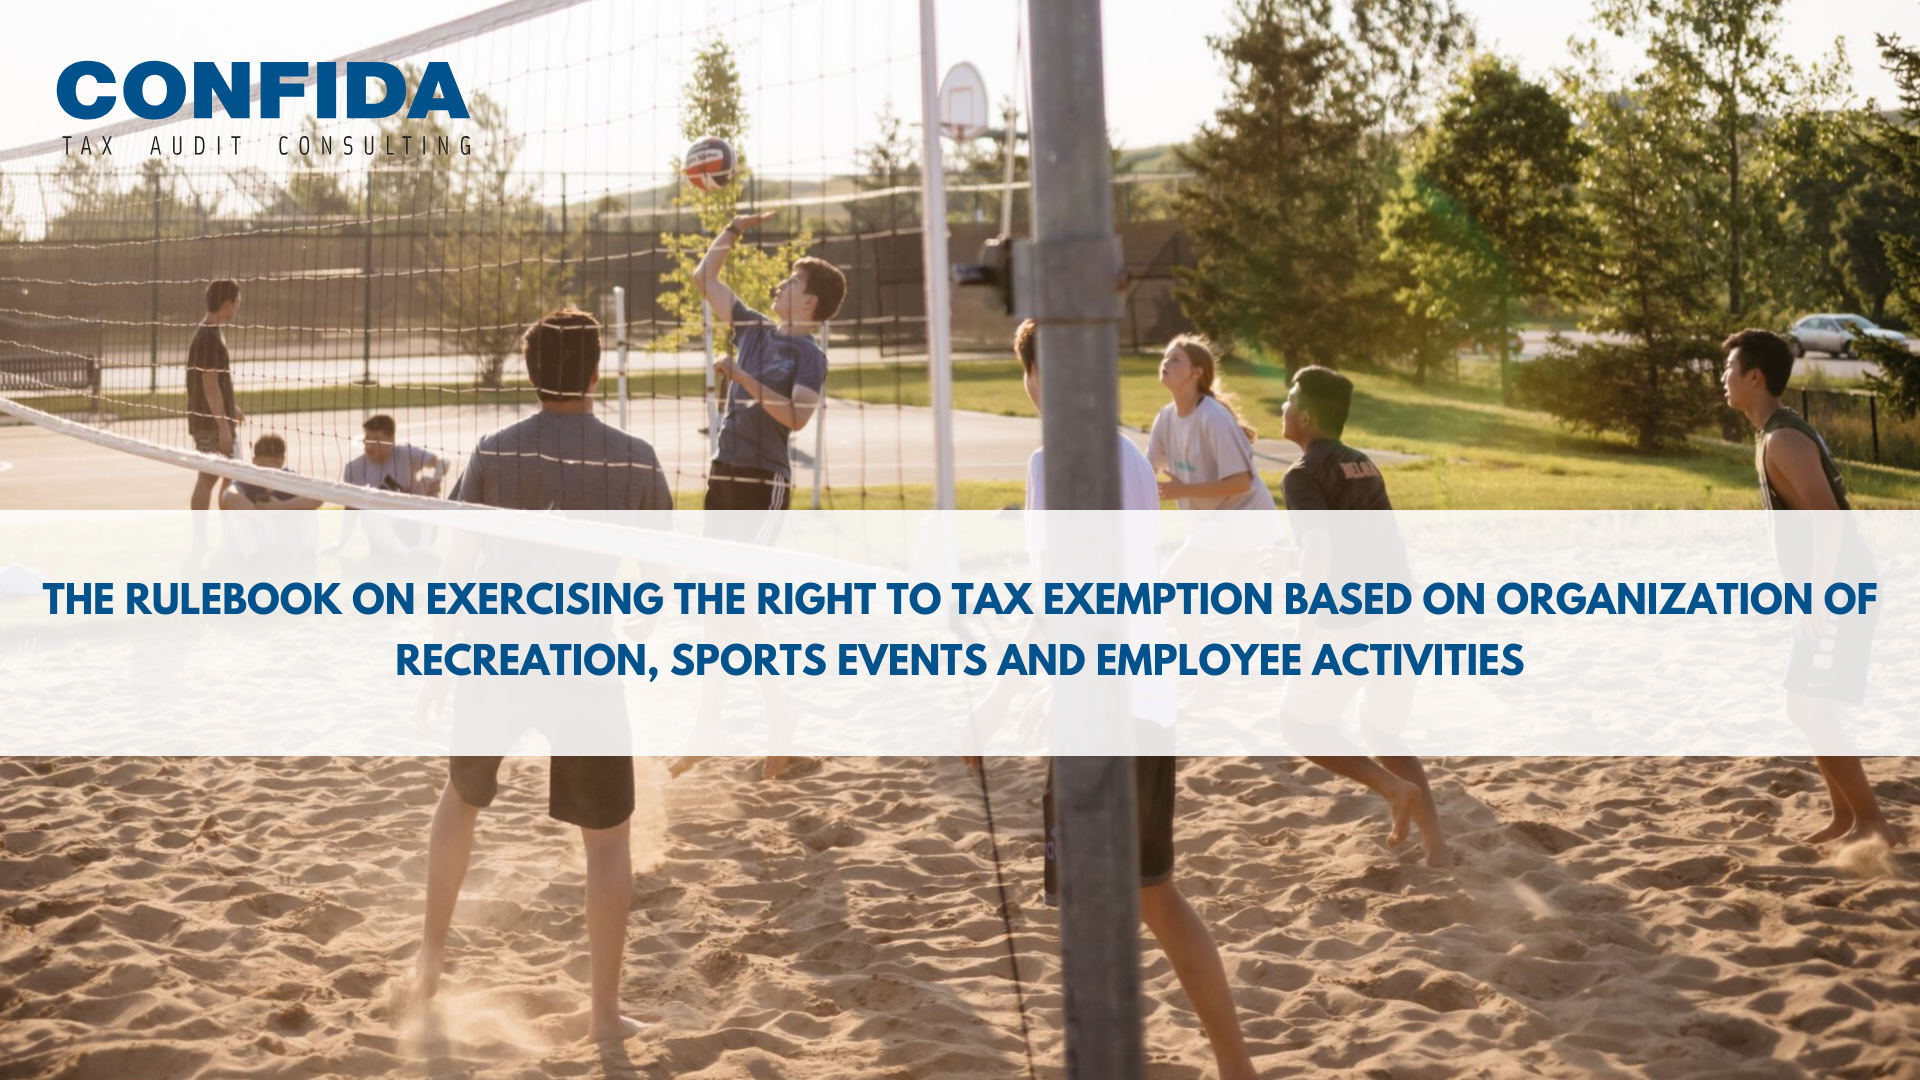 Recreation, sports events and employee activities